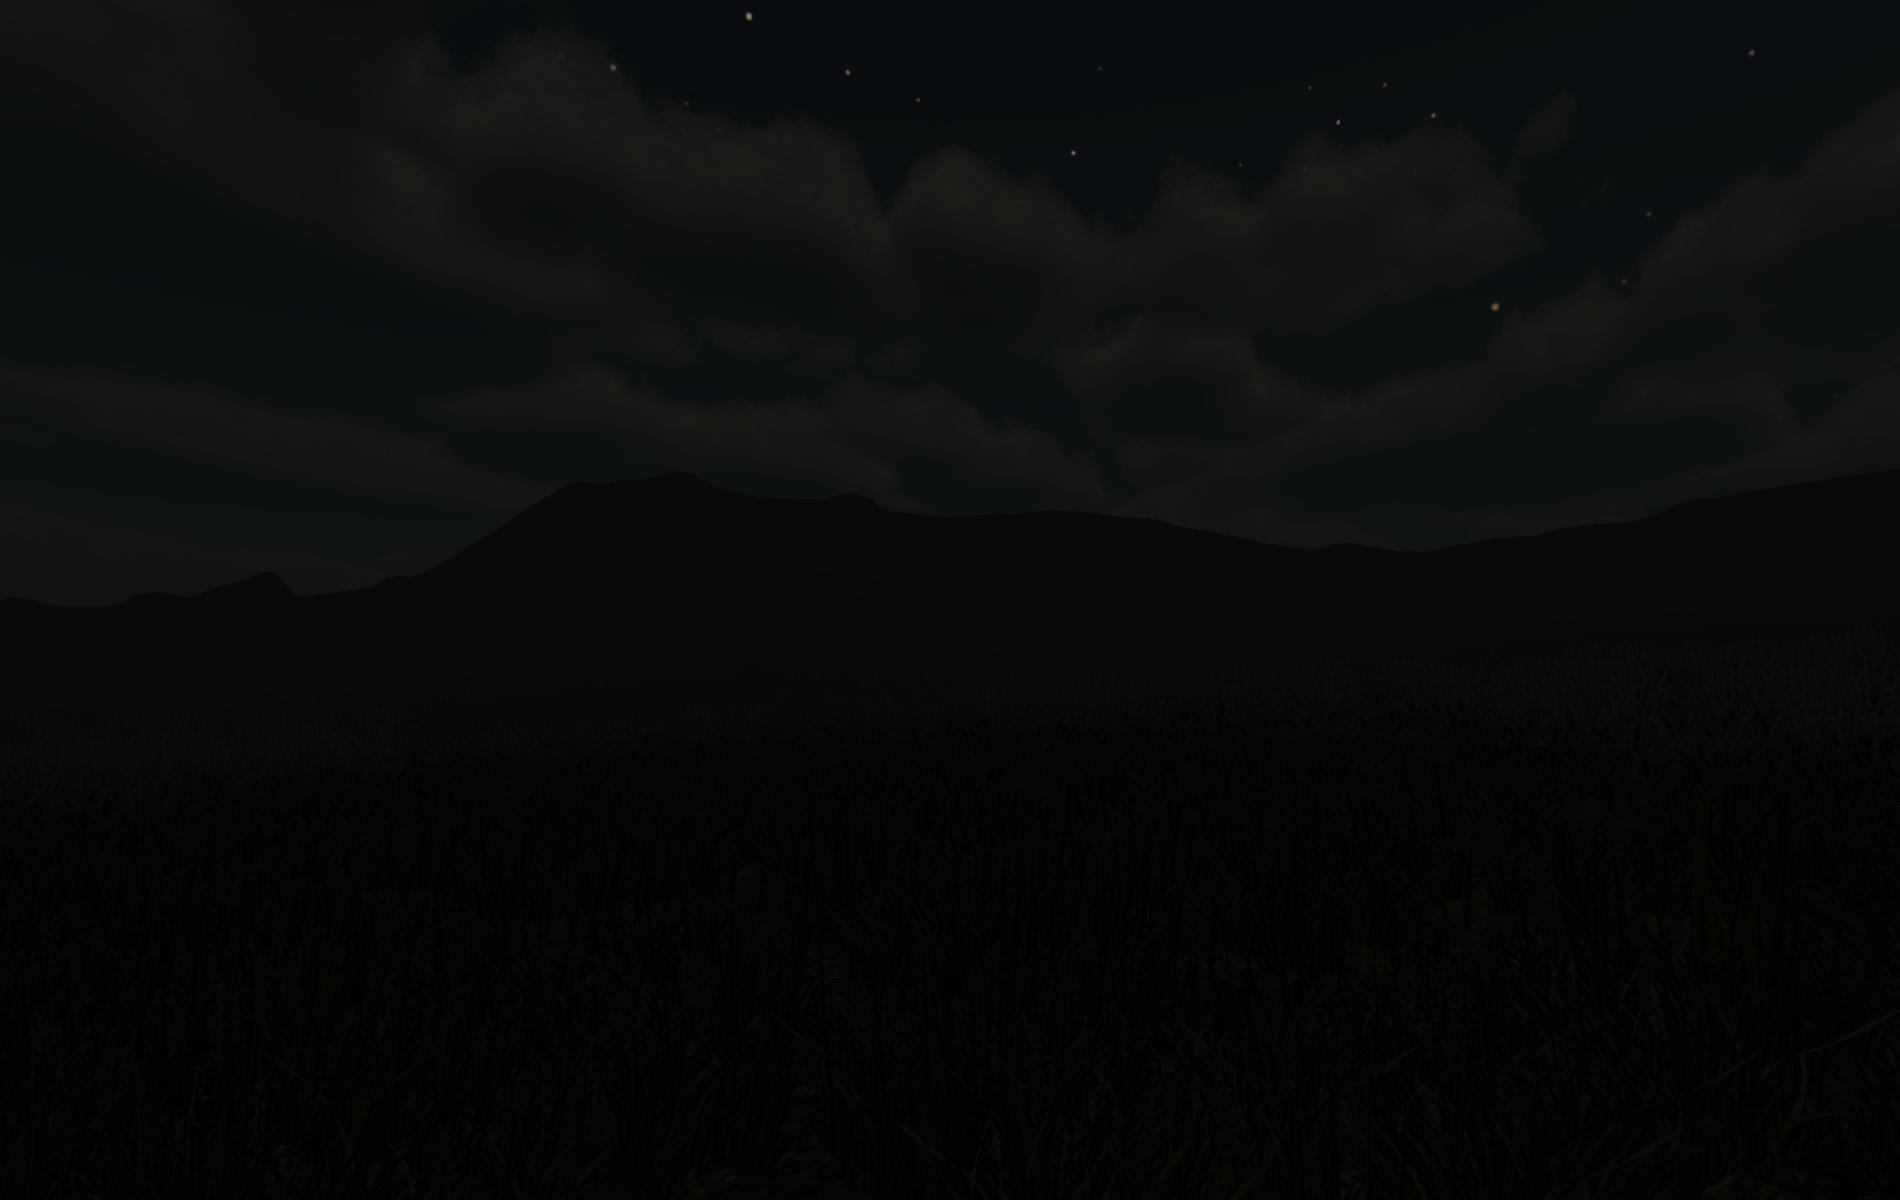 Night view of distant hills